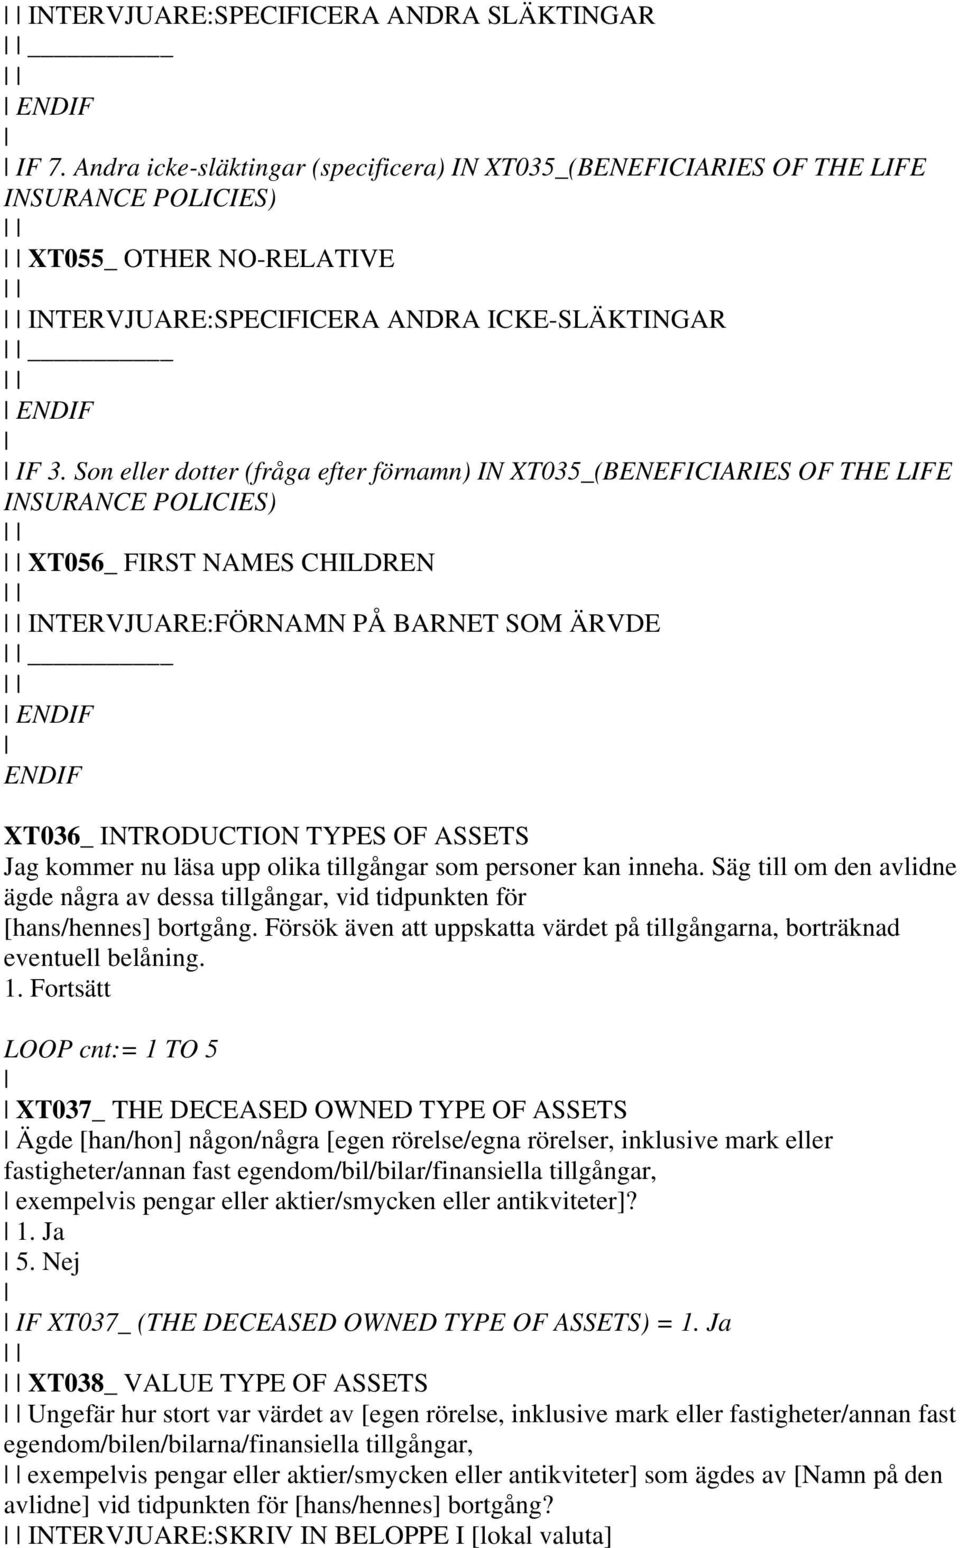 Son eller dotter (fråga efter förnamn) IN XT035_(BENEFICIARIES OF THE LIFE INSURANCE POLICIES) XT056_ FIRST NAMES CHILDREN INTERVJUARE:FÖRNAMN PÅ BARNET SOM ÄRVDE XT036_ INTRODUCTION TYPES OF ASSETS